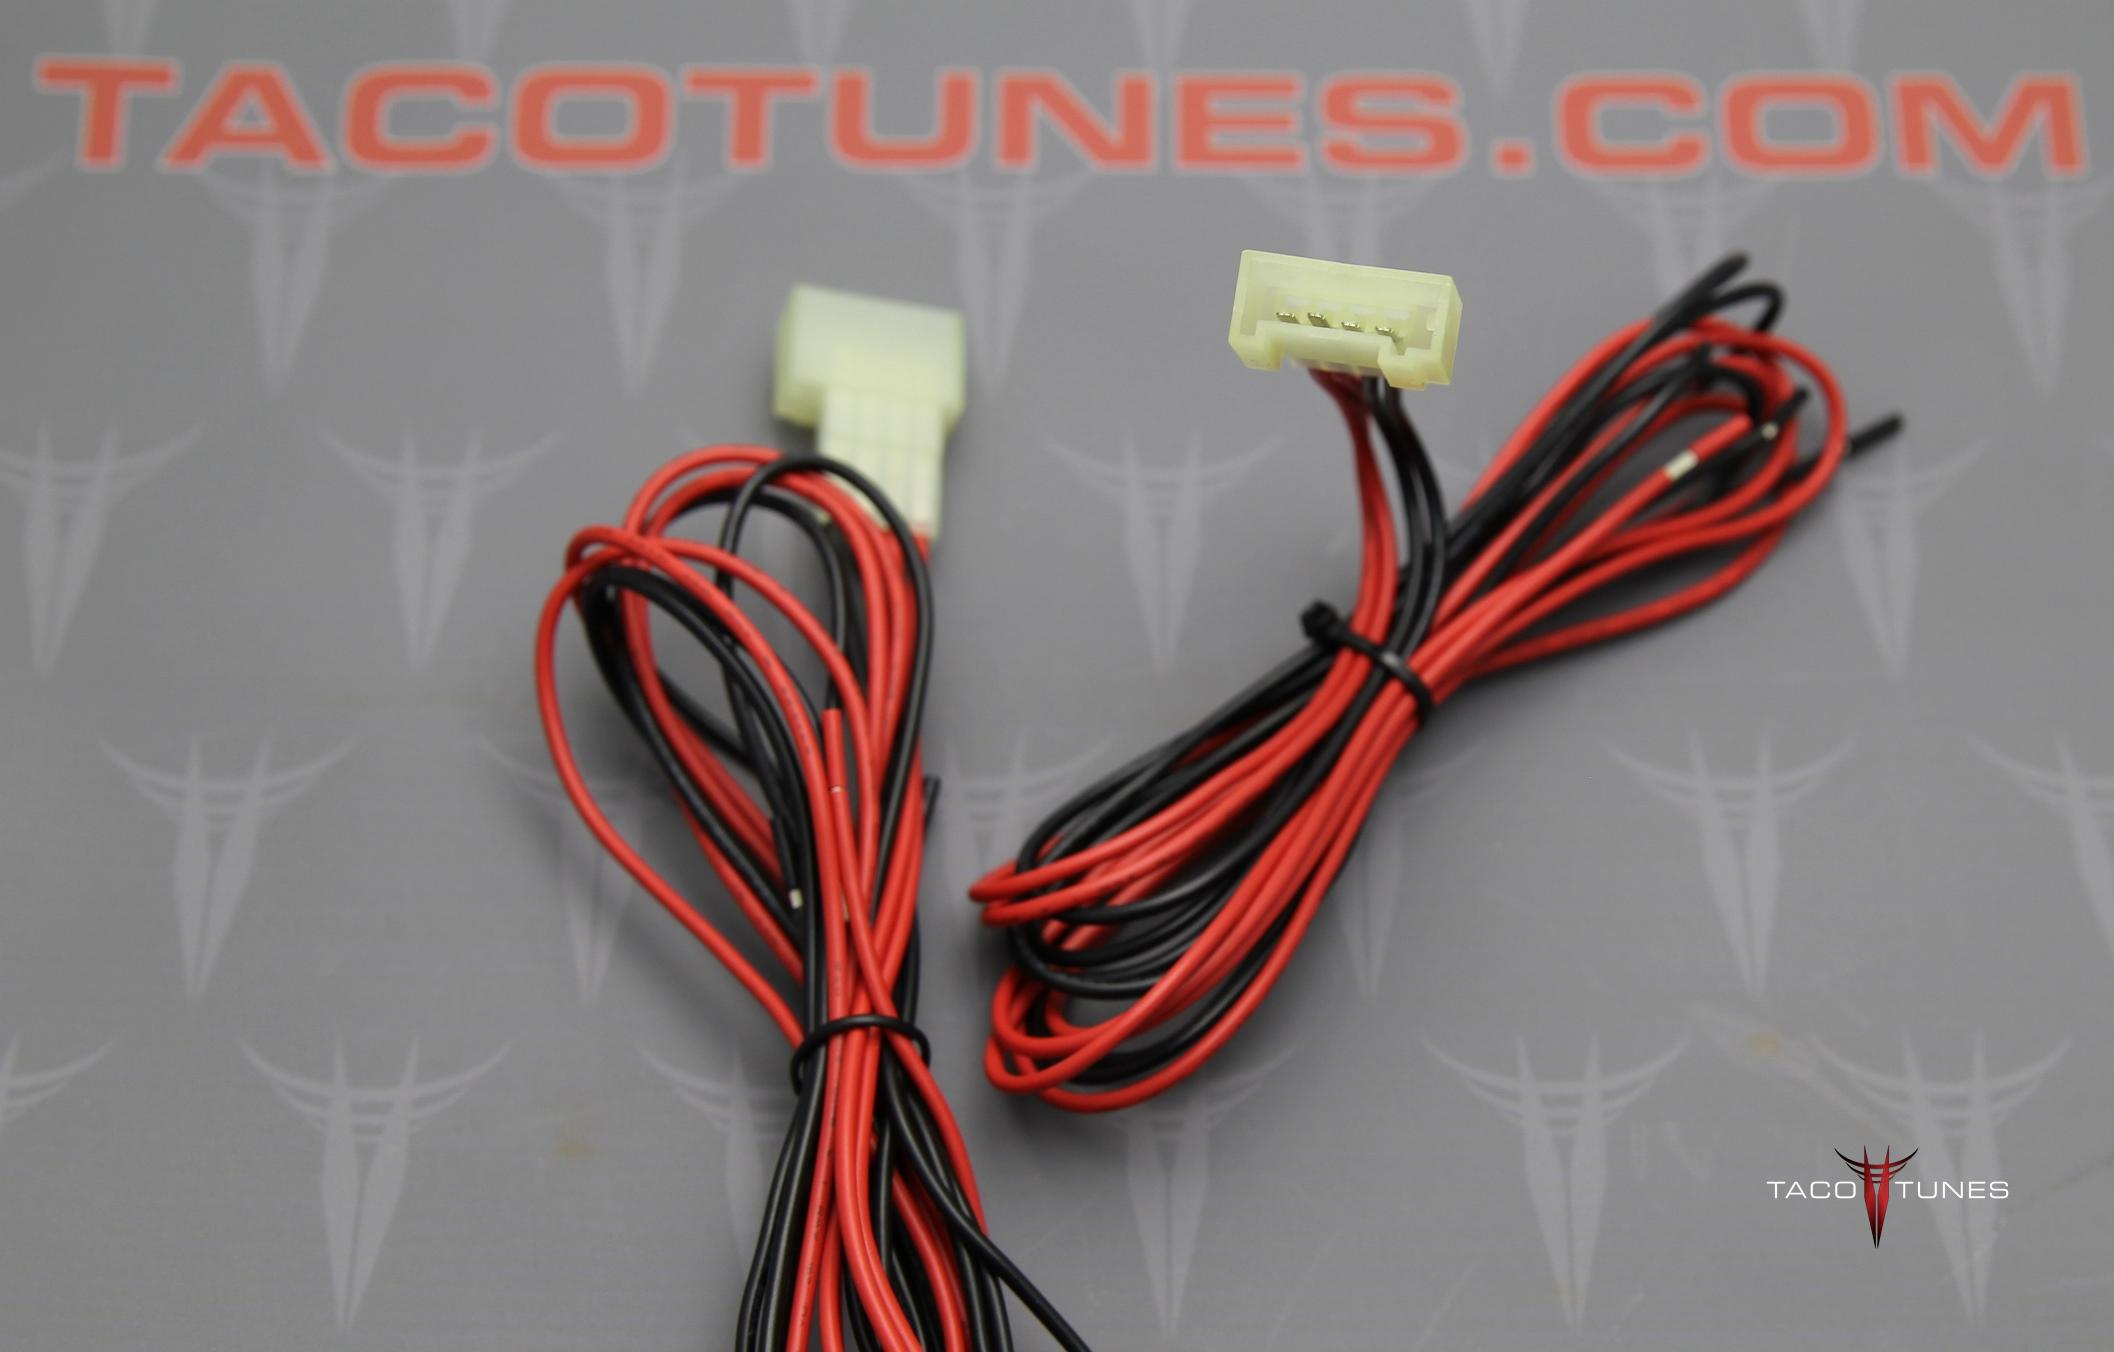 Toyota Camry Tweeter Wire Harness Adapter Dash speaker 3 2007 2011 toyota camry tweeter wire harness adapters 2011 camry wiring harness at edmiracle.co